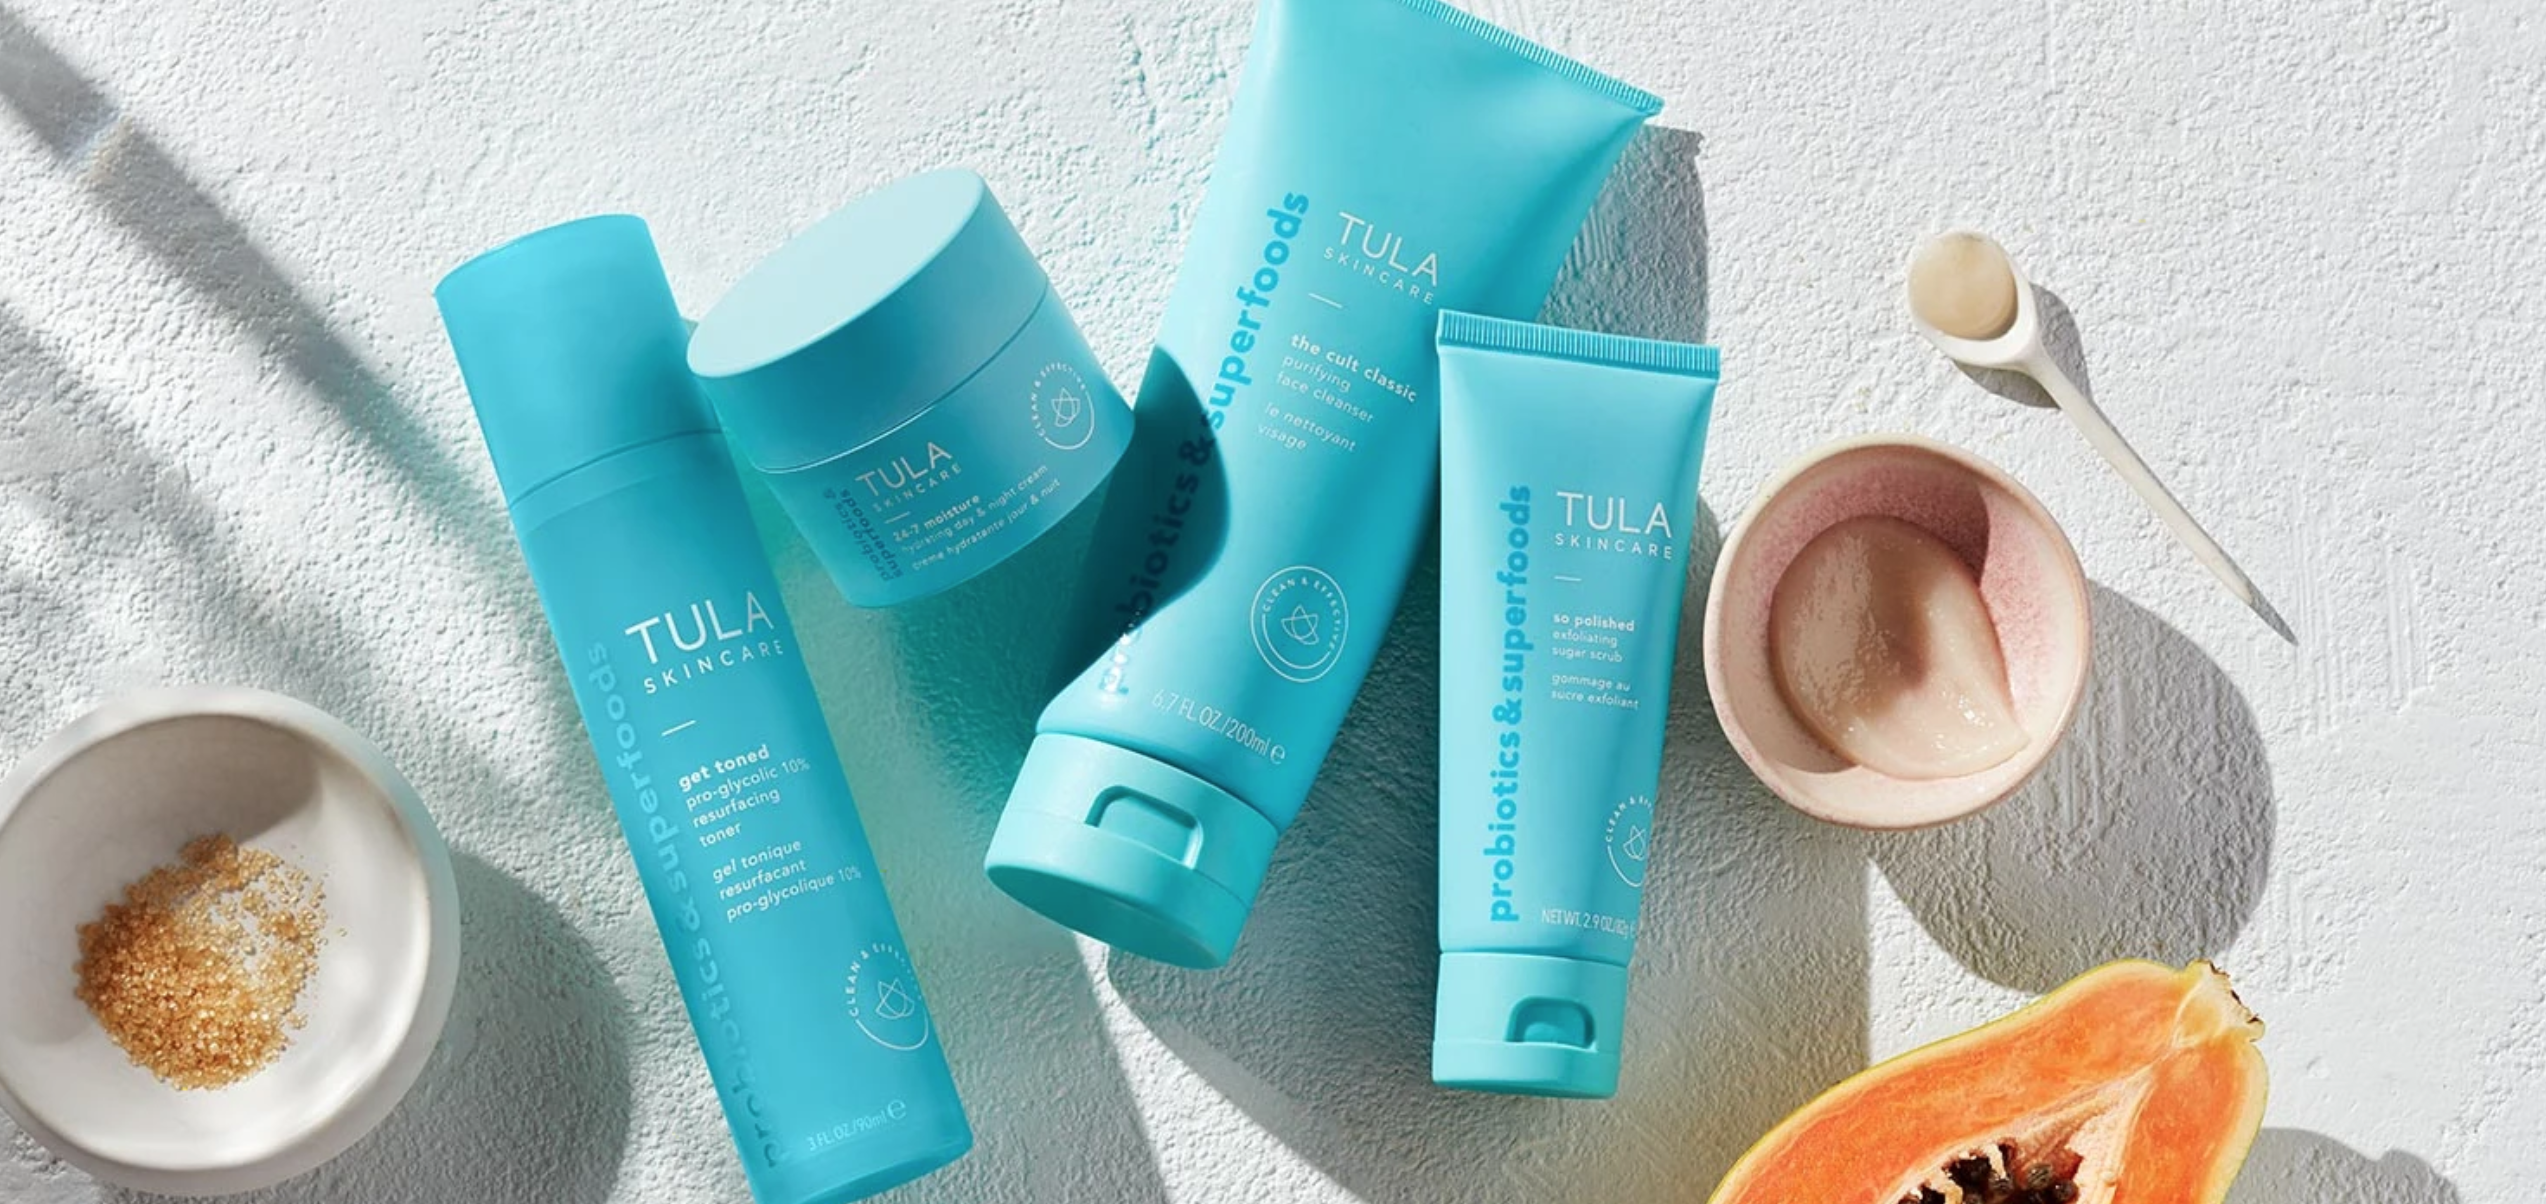 A flat-lay photo featuring products from TULA.